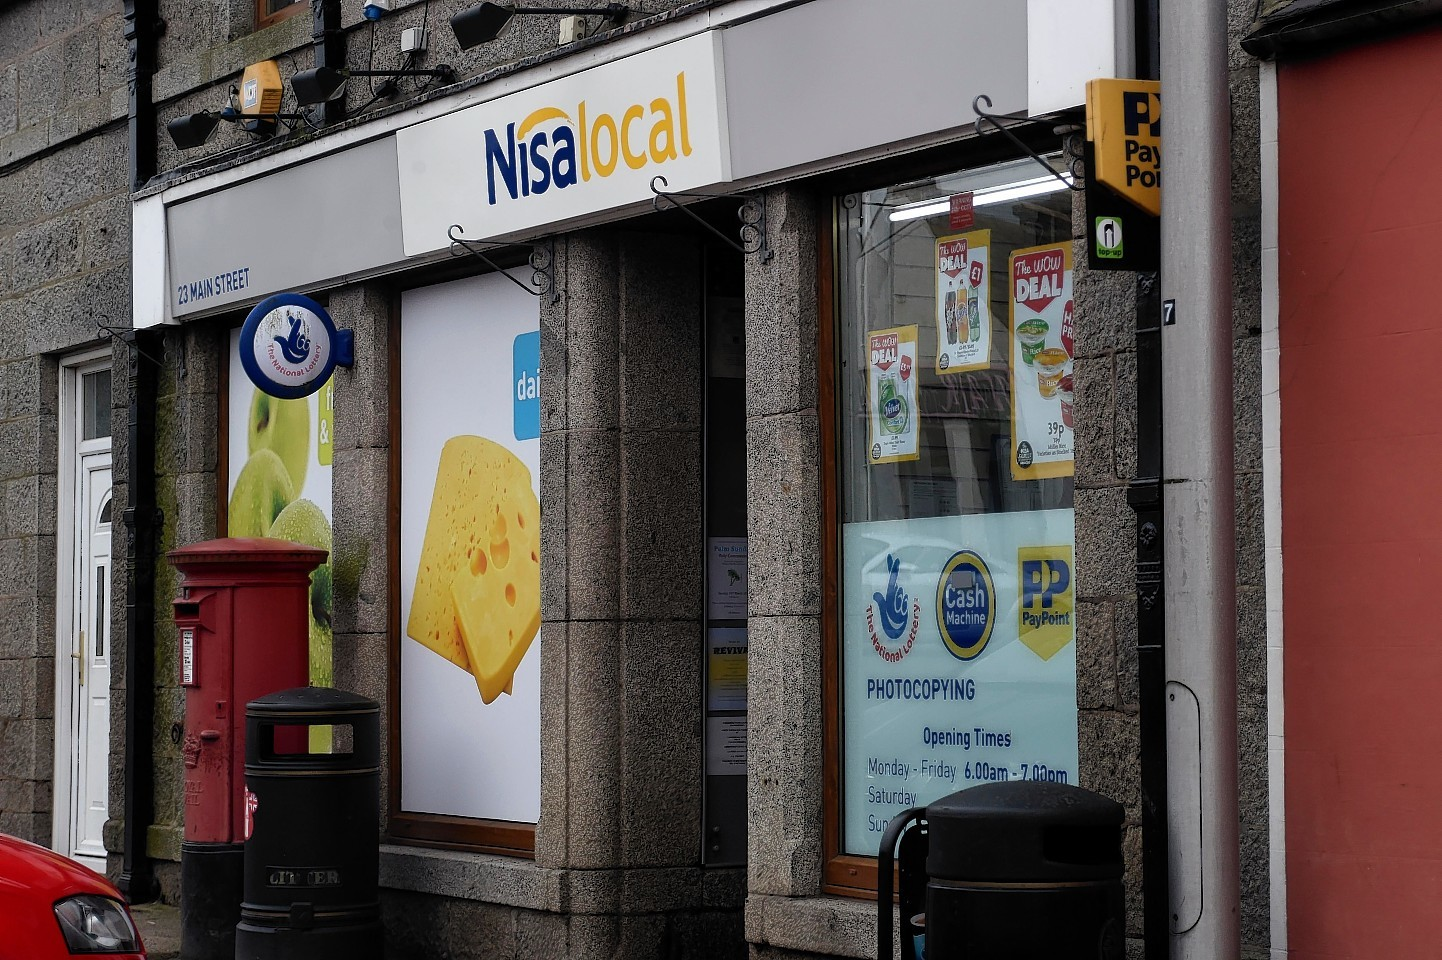 The Nisa shop was robbed in the early hours of Thursday morning